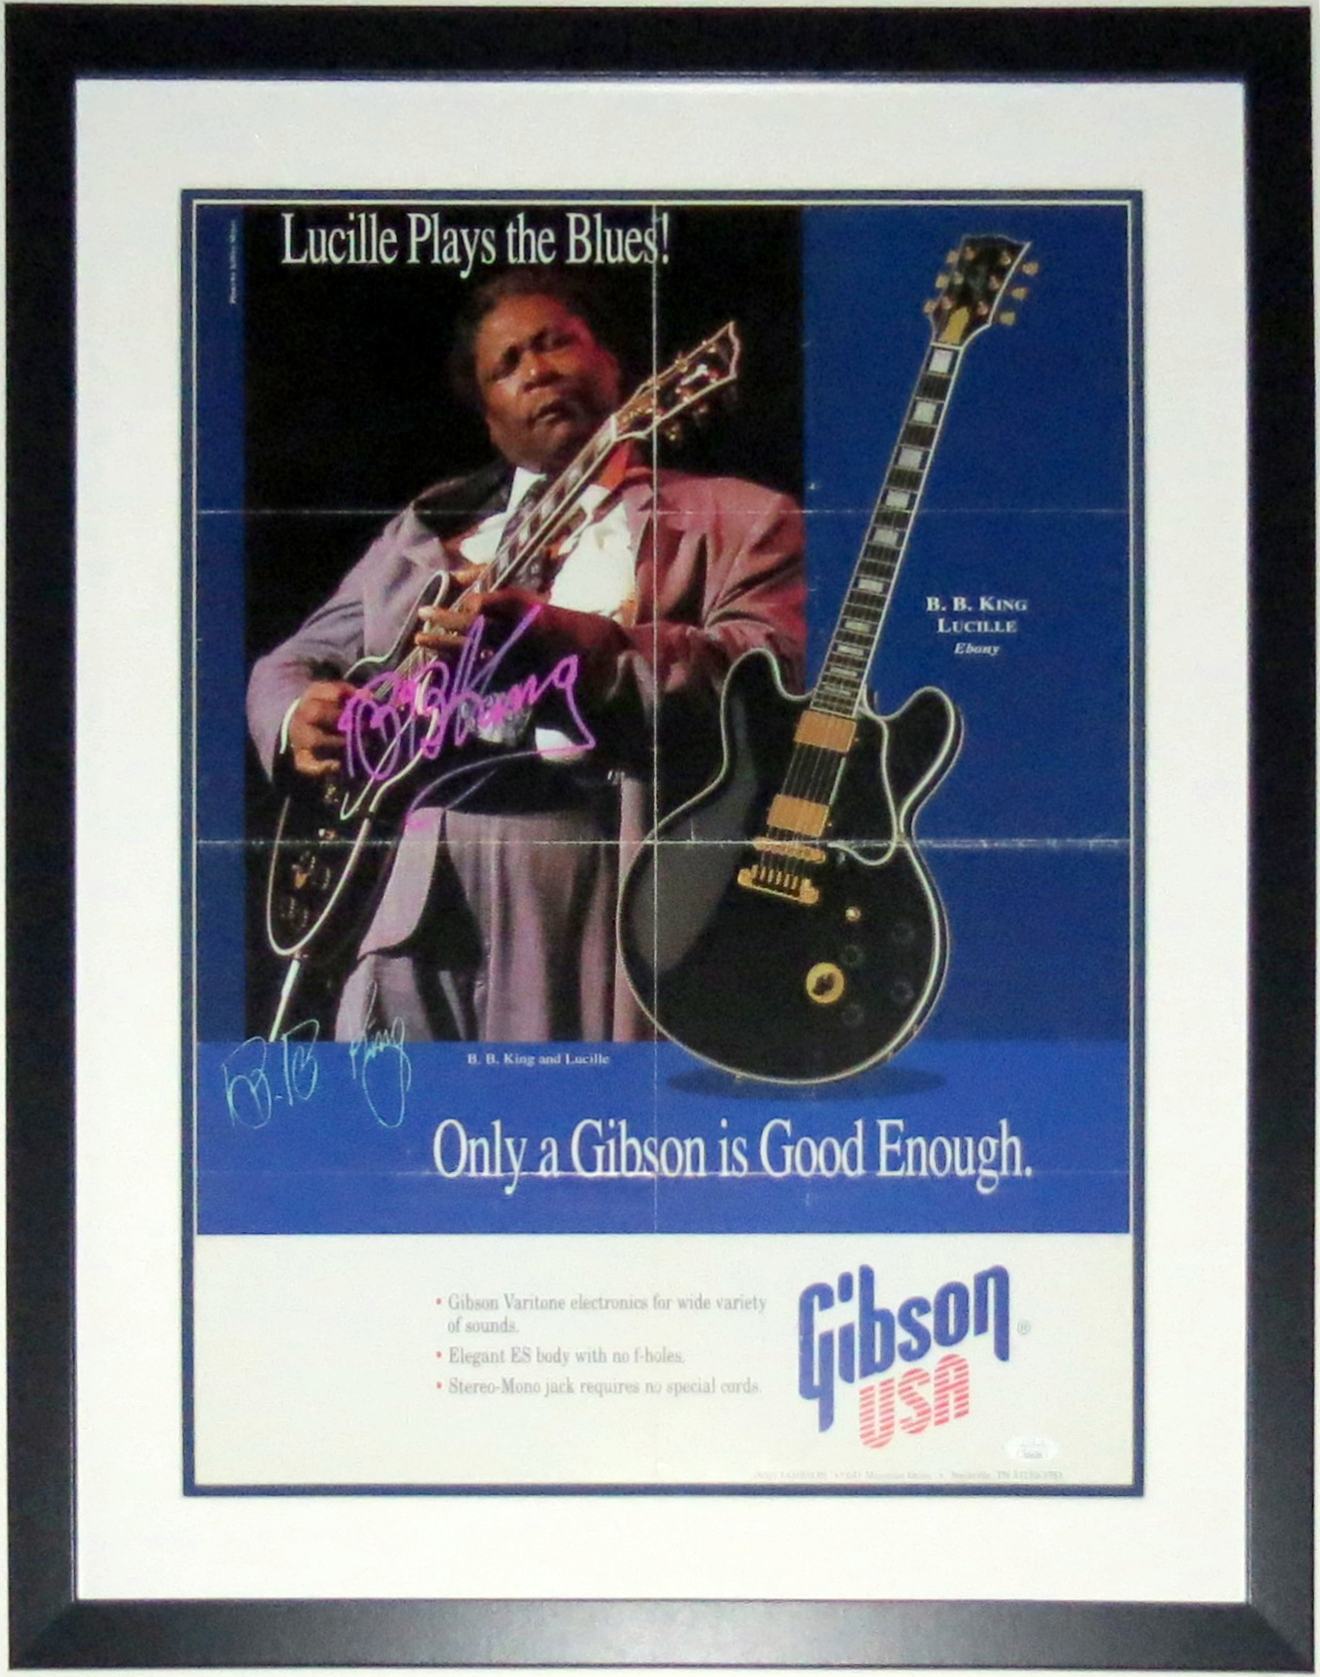 B.B. King Autographed Gibson Guitar 18x24 Poster - JSA COA Authenticated - Professionally Framed